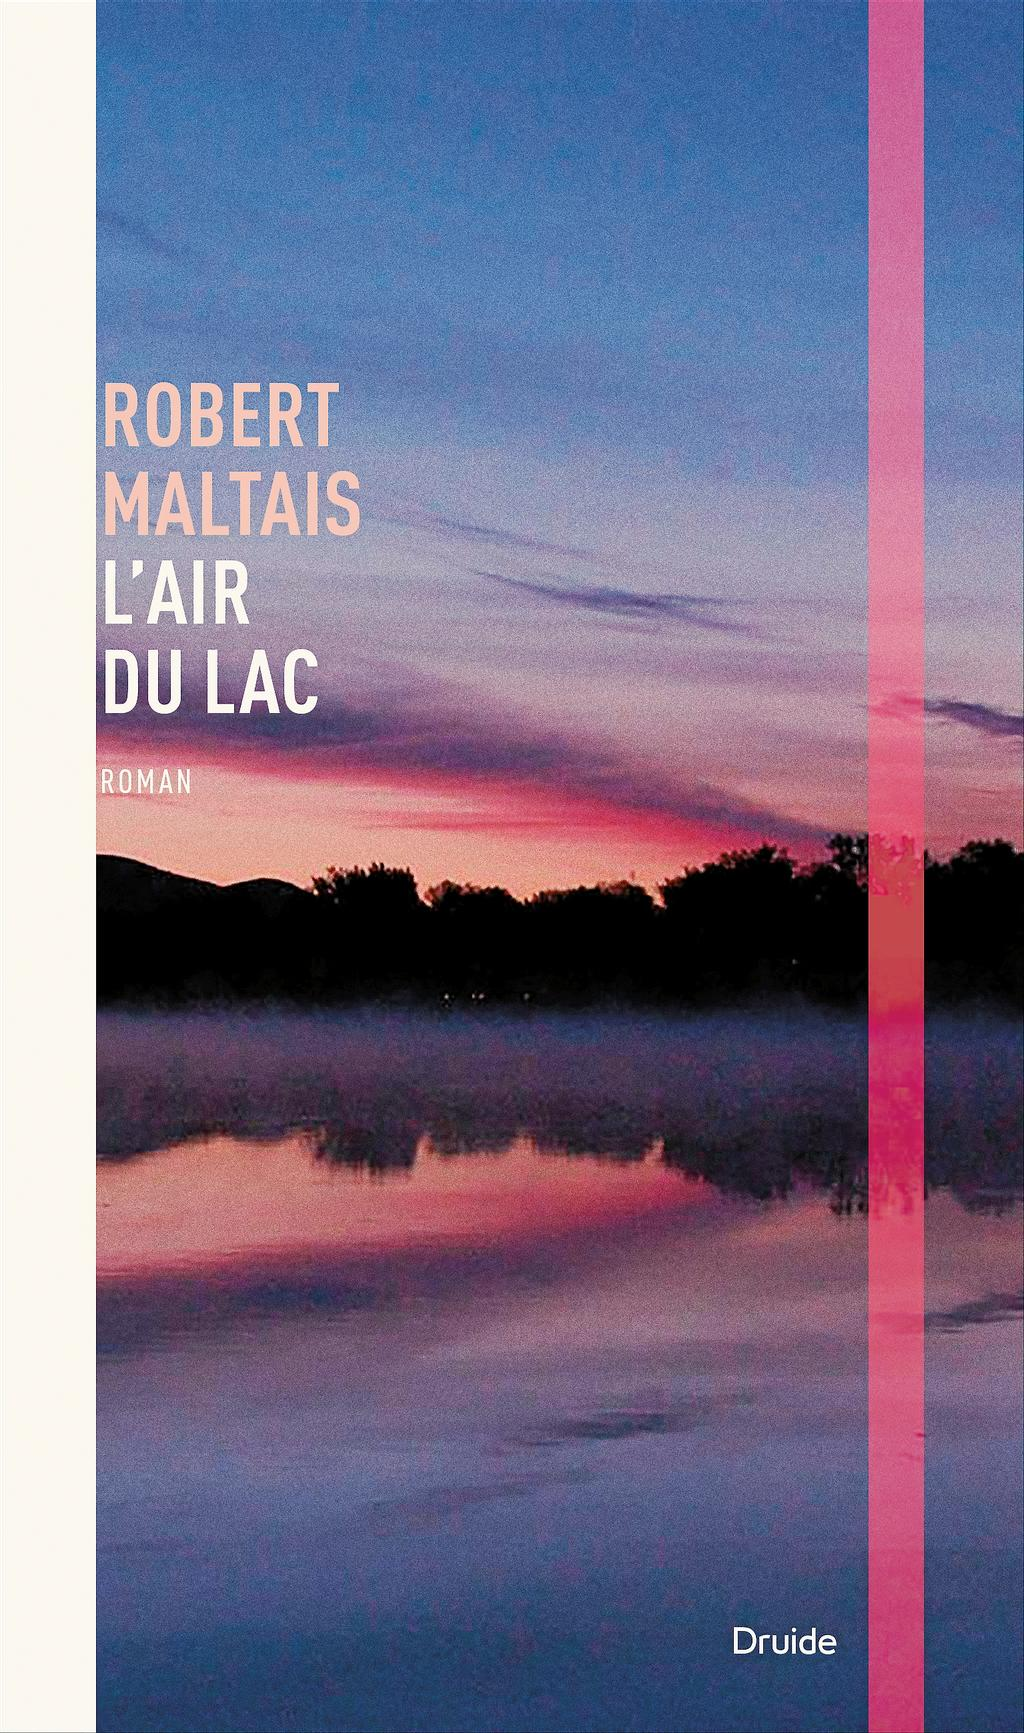 ROBERT MALTAIS   L'air du lac  ROMAN   Druide   224 pages